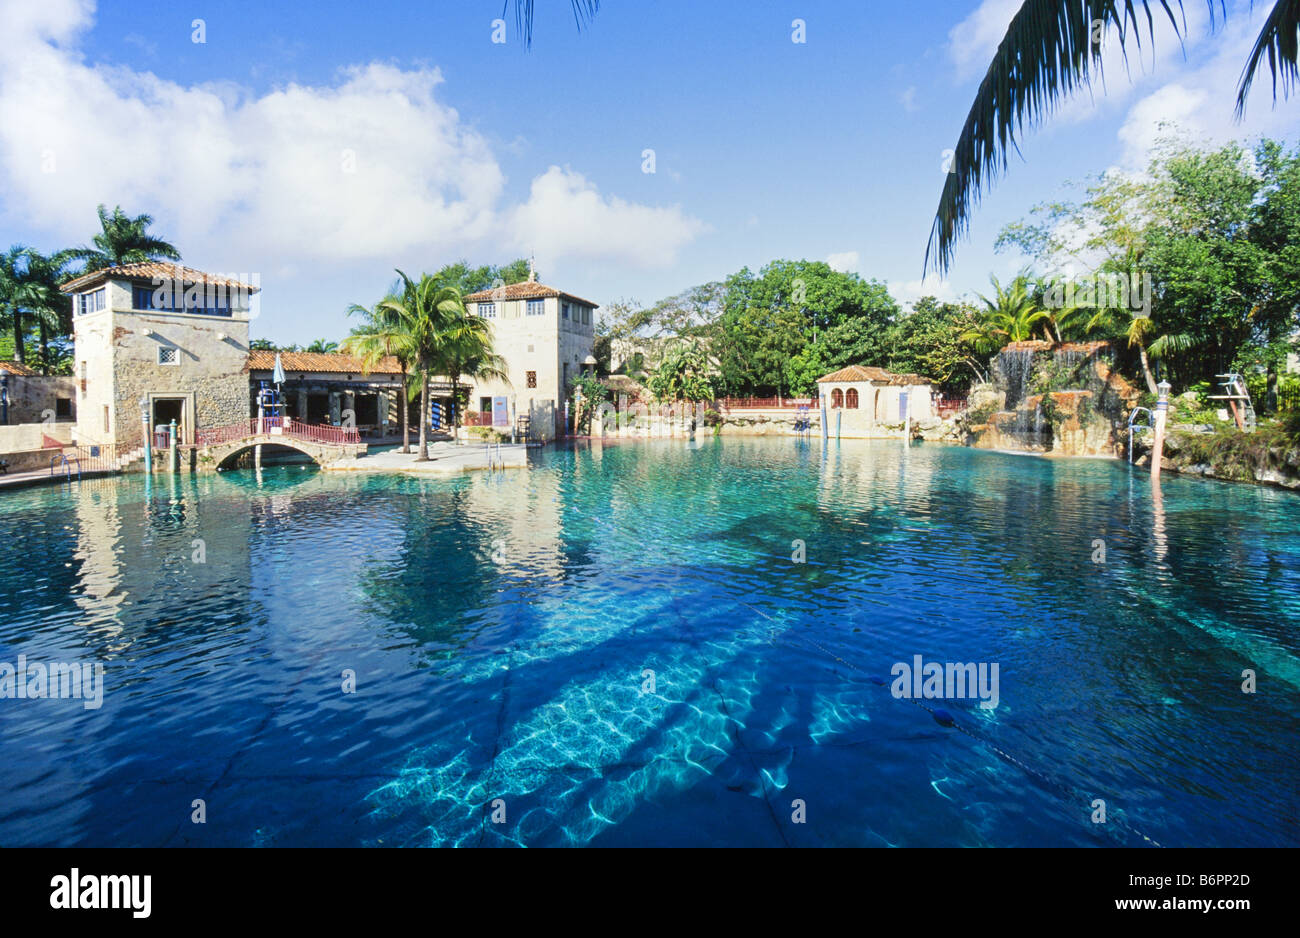 Venetion Pool Public Swimming Pool Coral Gables Stock Photo 21398565 Alamy